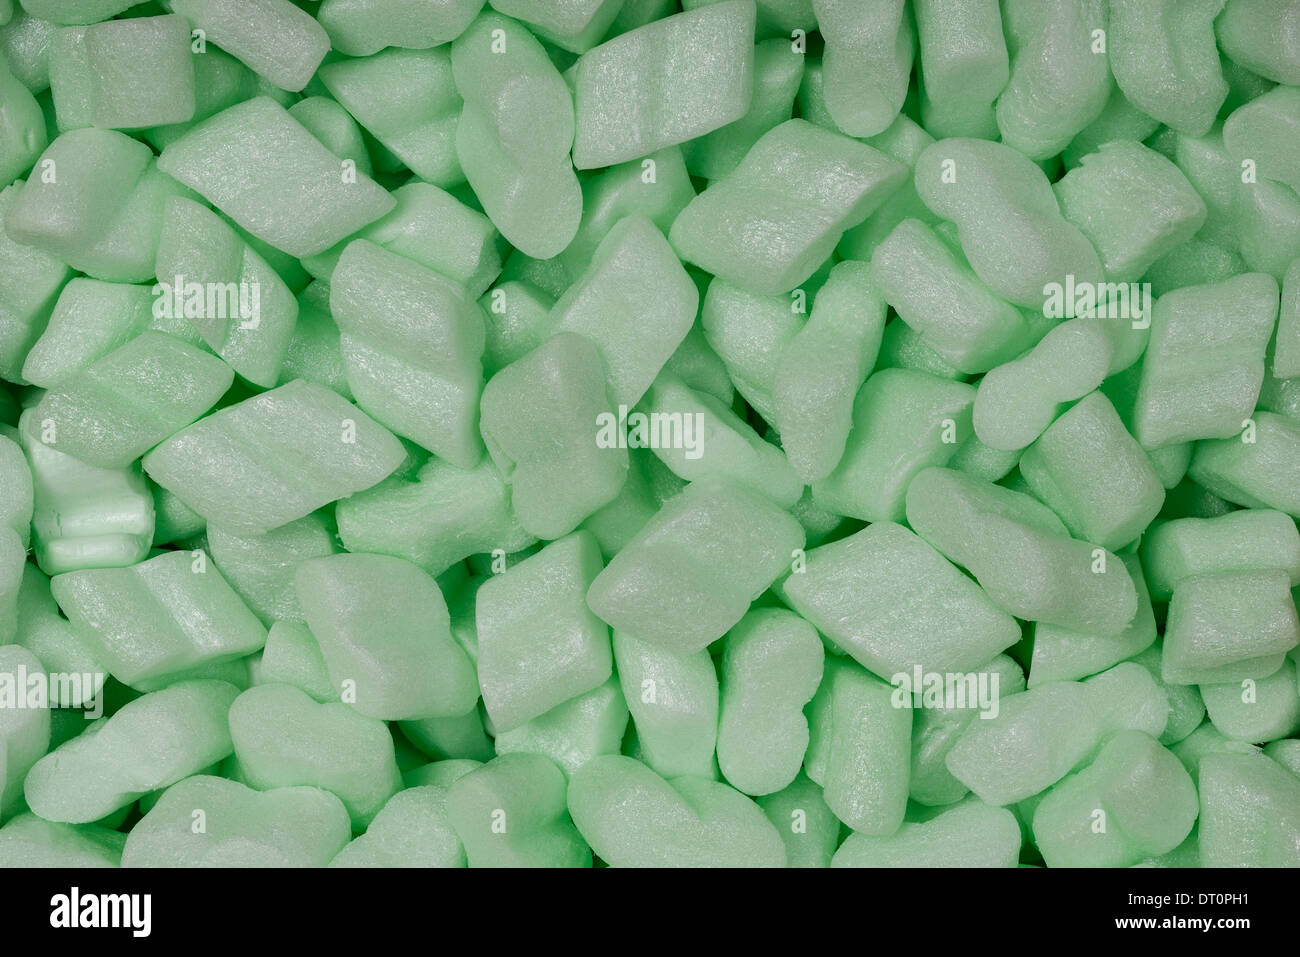 Green corn starch packaging peanuts material - Stock Image